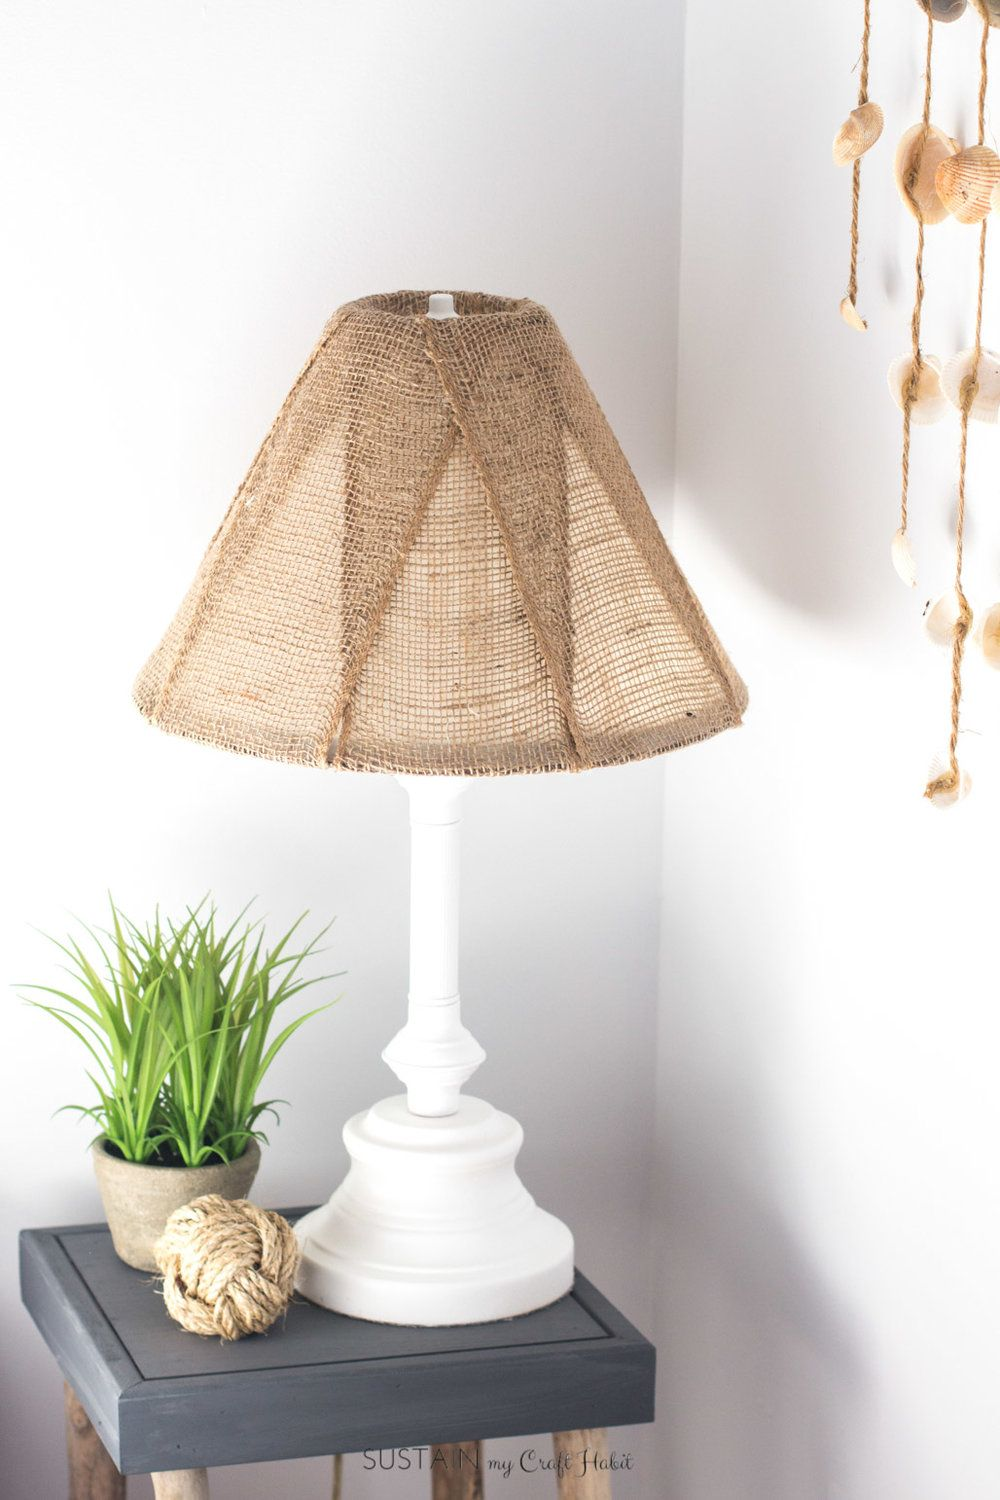 A Diy Brass Lamp Makeover With A Burlap Lampshade Burlap